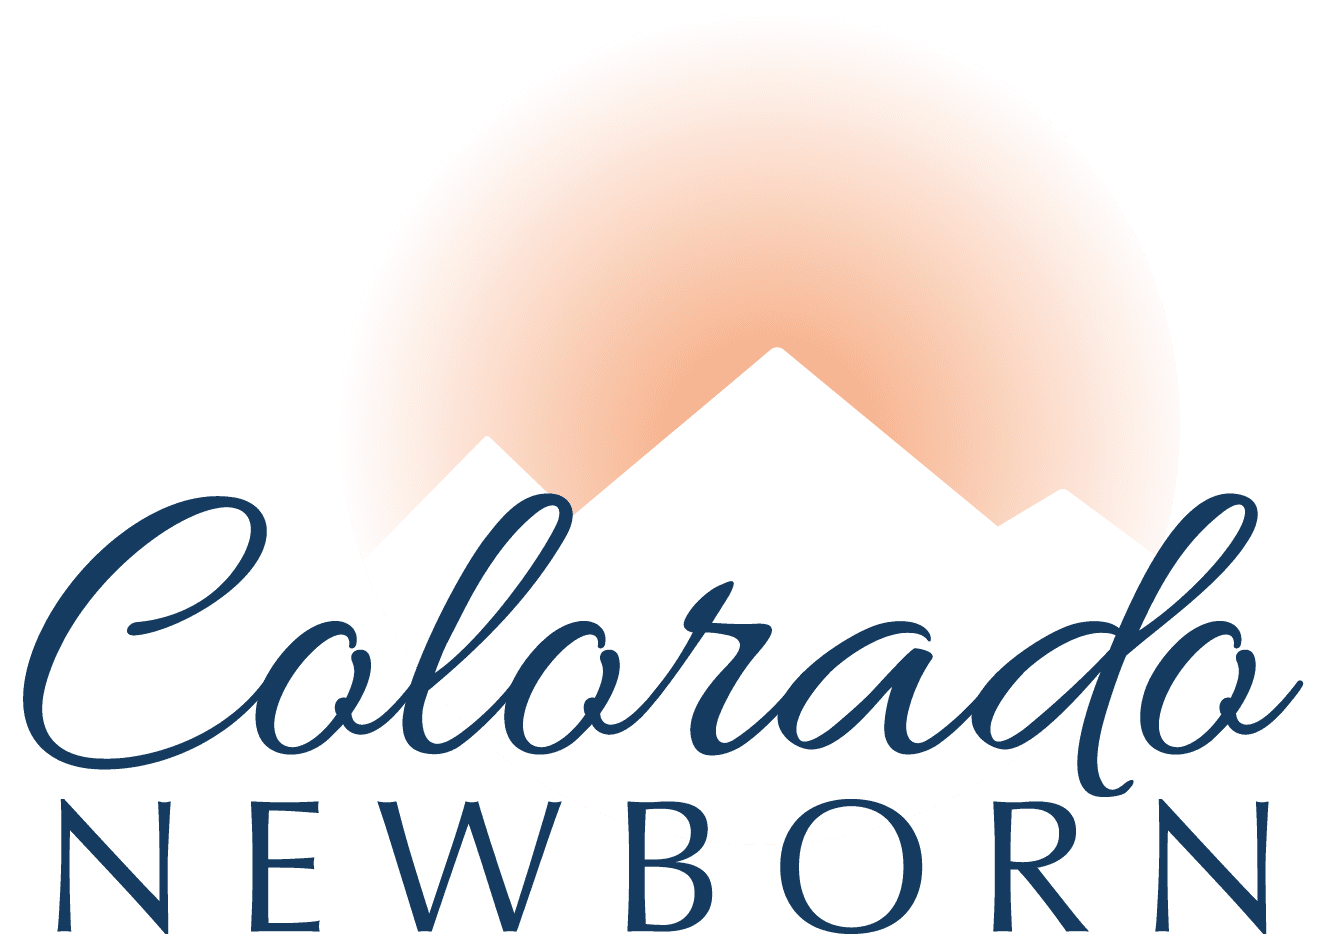 Colorado Newborn